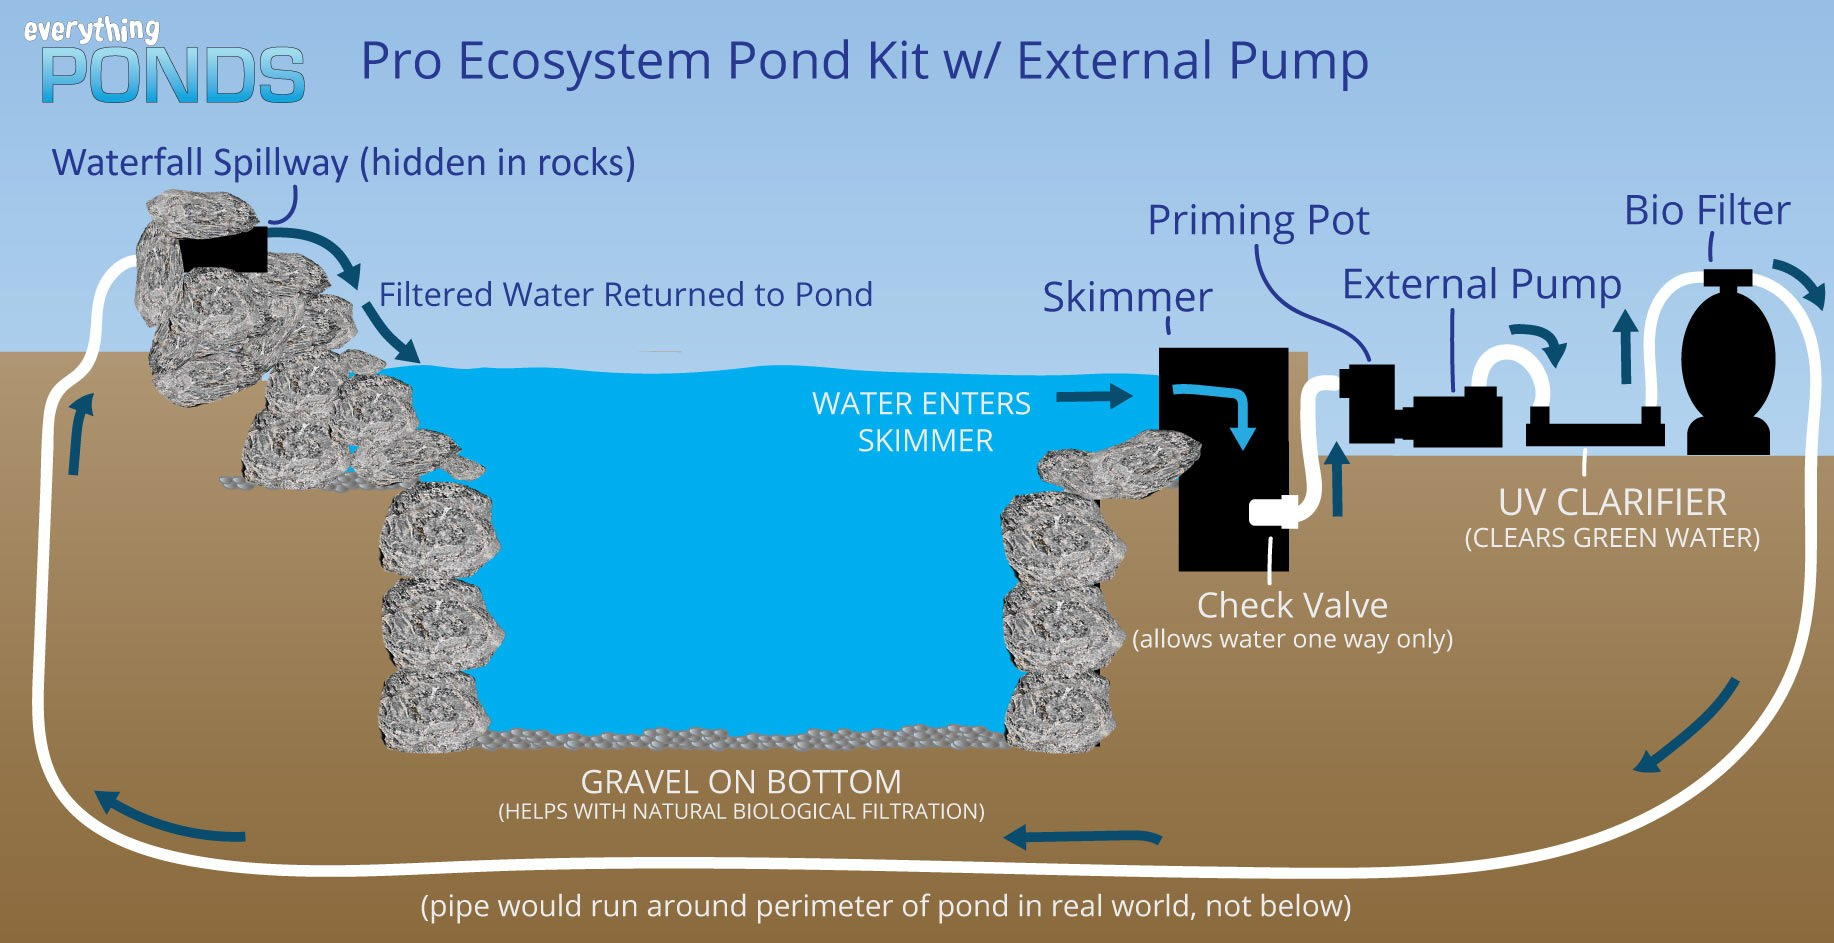 Pro Ecosystem Kit with External Pump